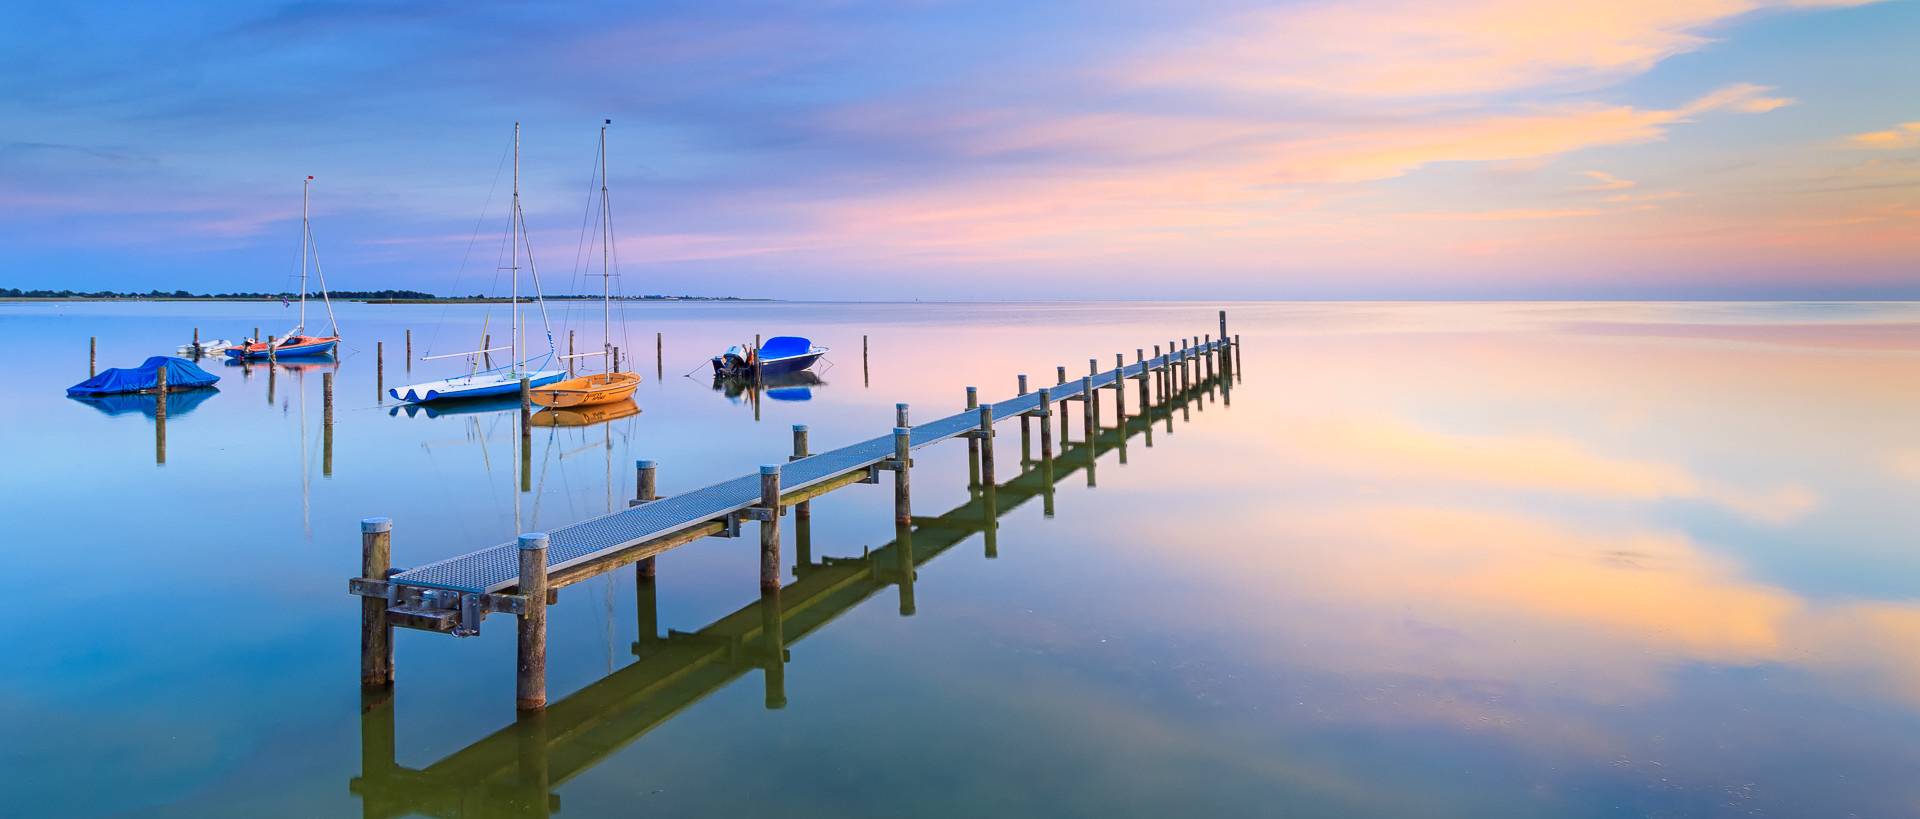 A tranquil and calm summer evening at Lake IJsselmeer near Hindeloopen, The Netherlands